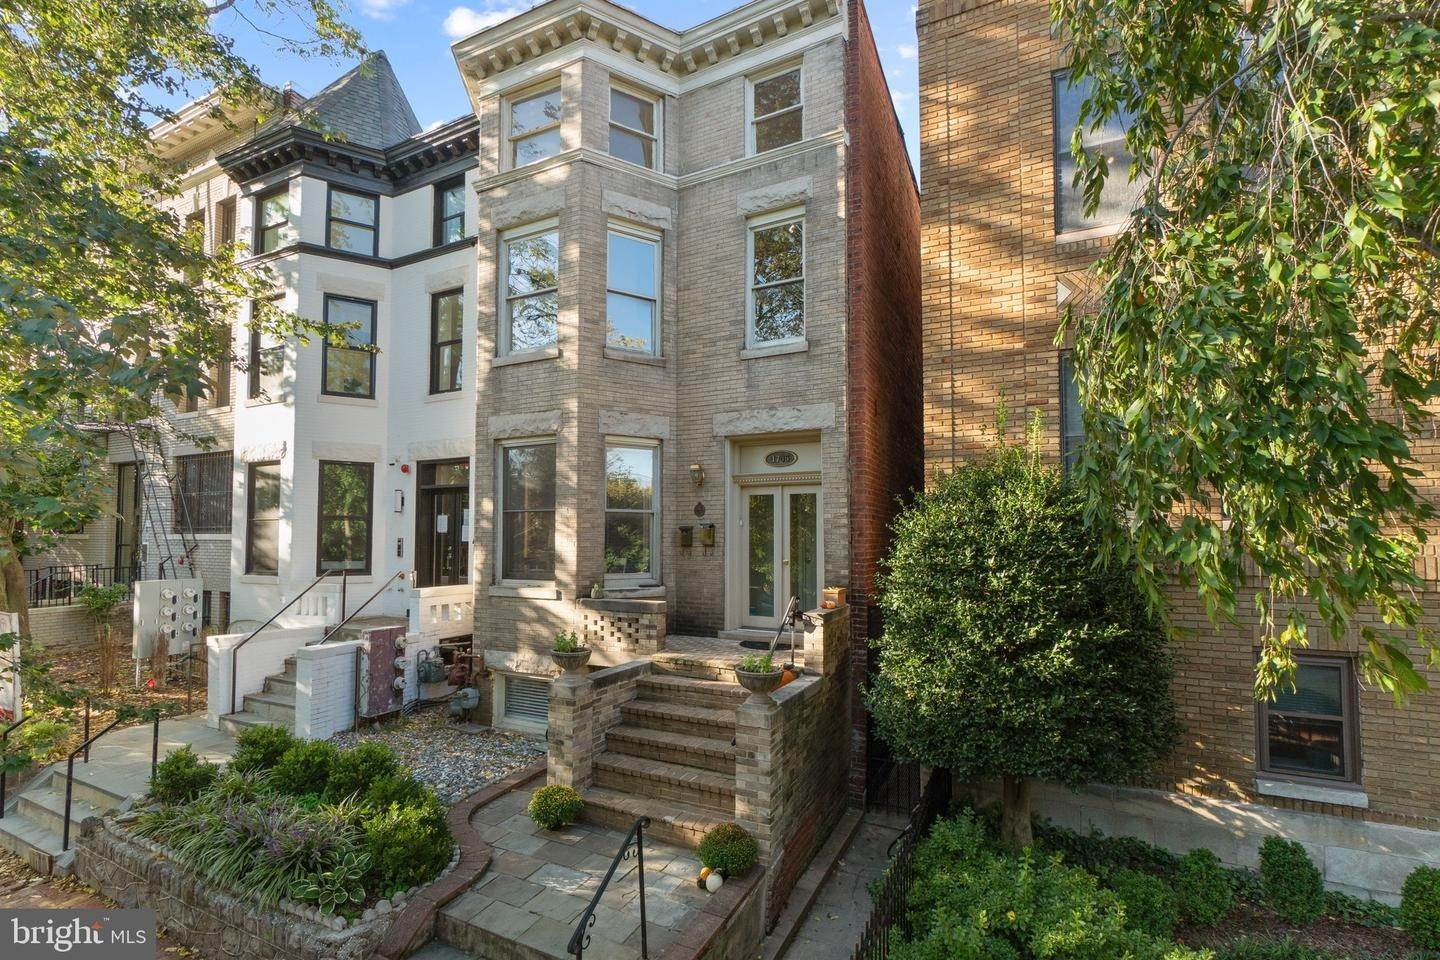 Multi-Family Homes for Sale at Dupont Circle, Washington, District Of Columbia, 20009 United States